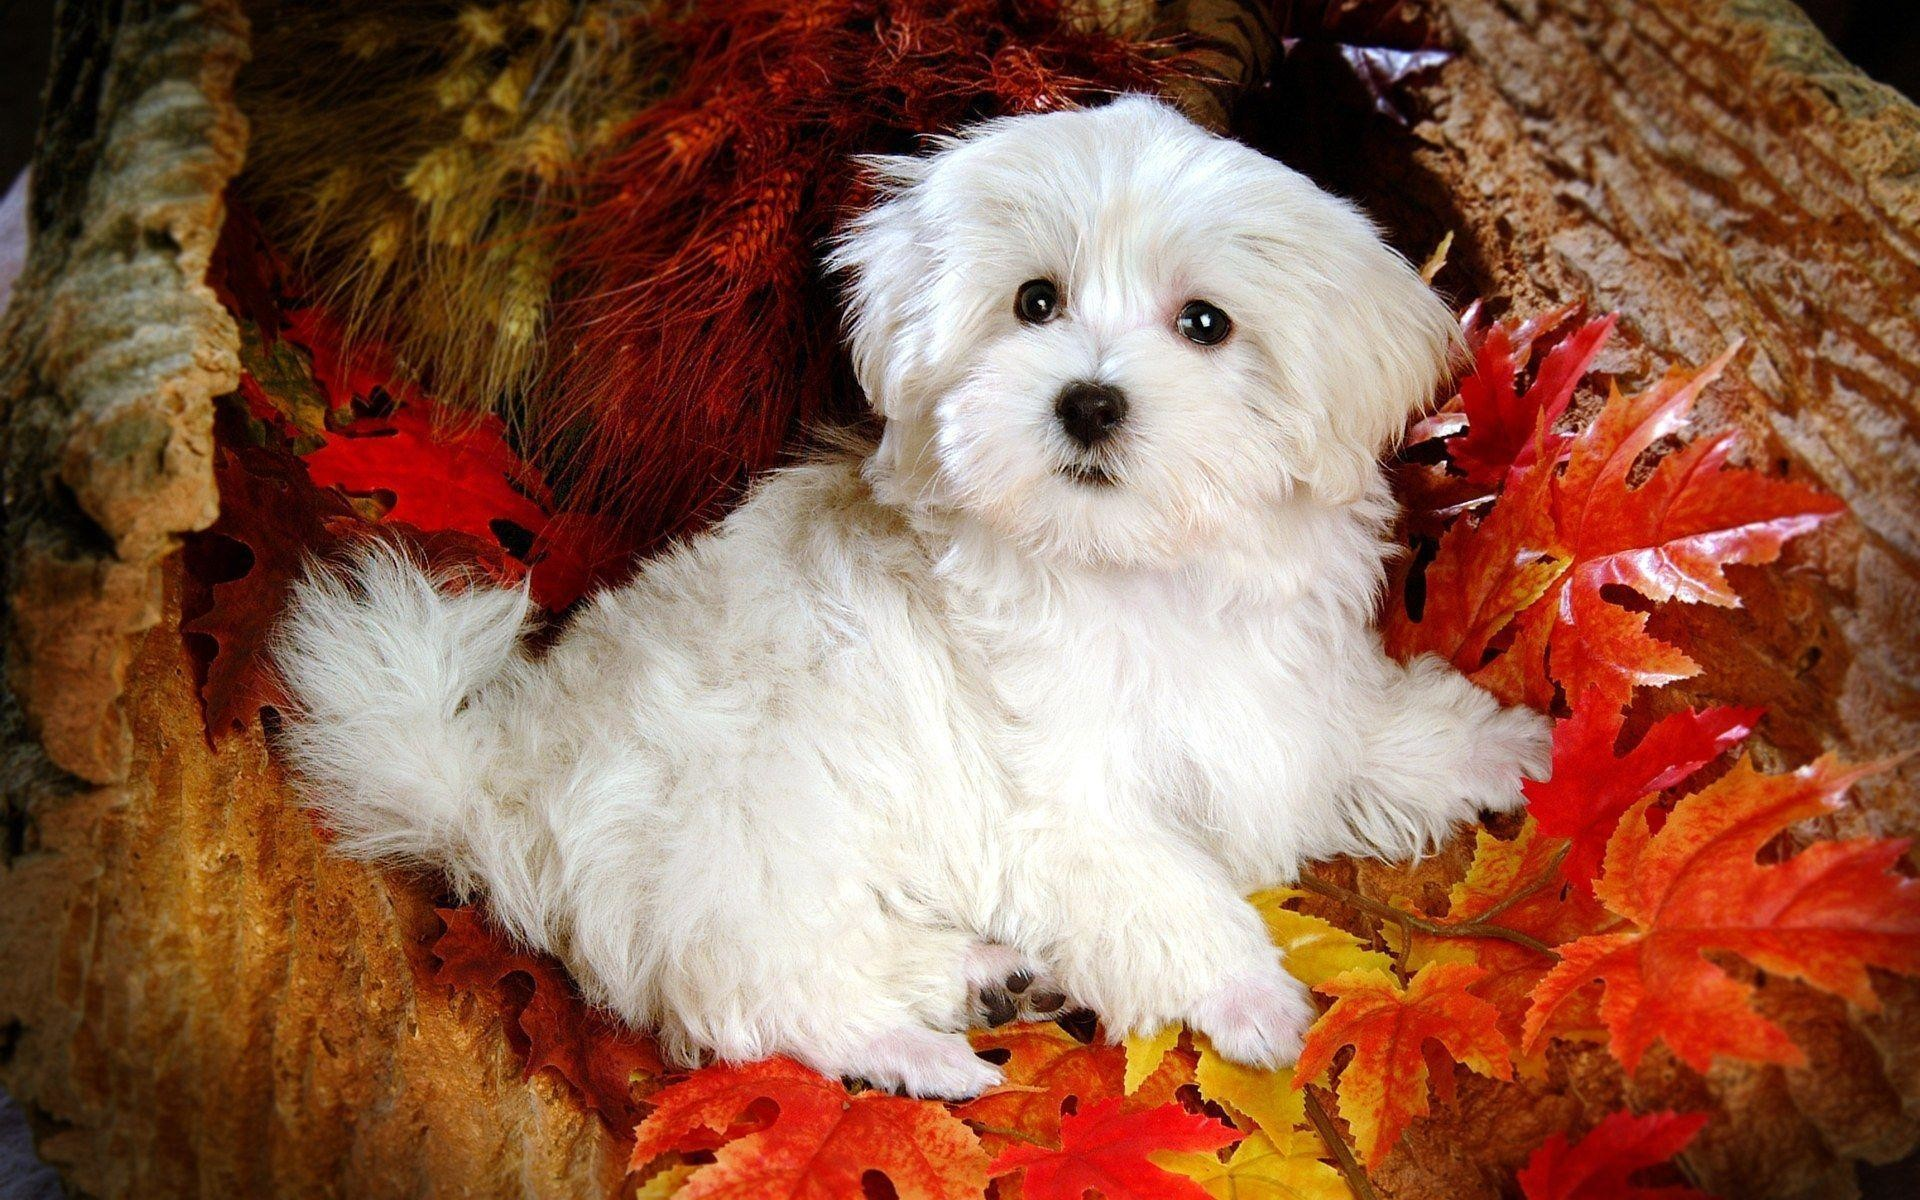 Cute Dog Wallpaper   Cute Puppy Dog Image   Cool Wallpapers